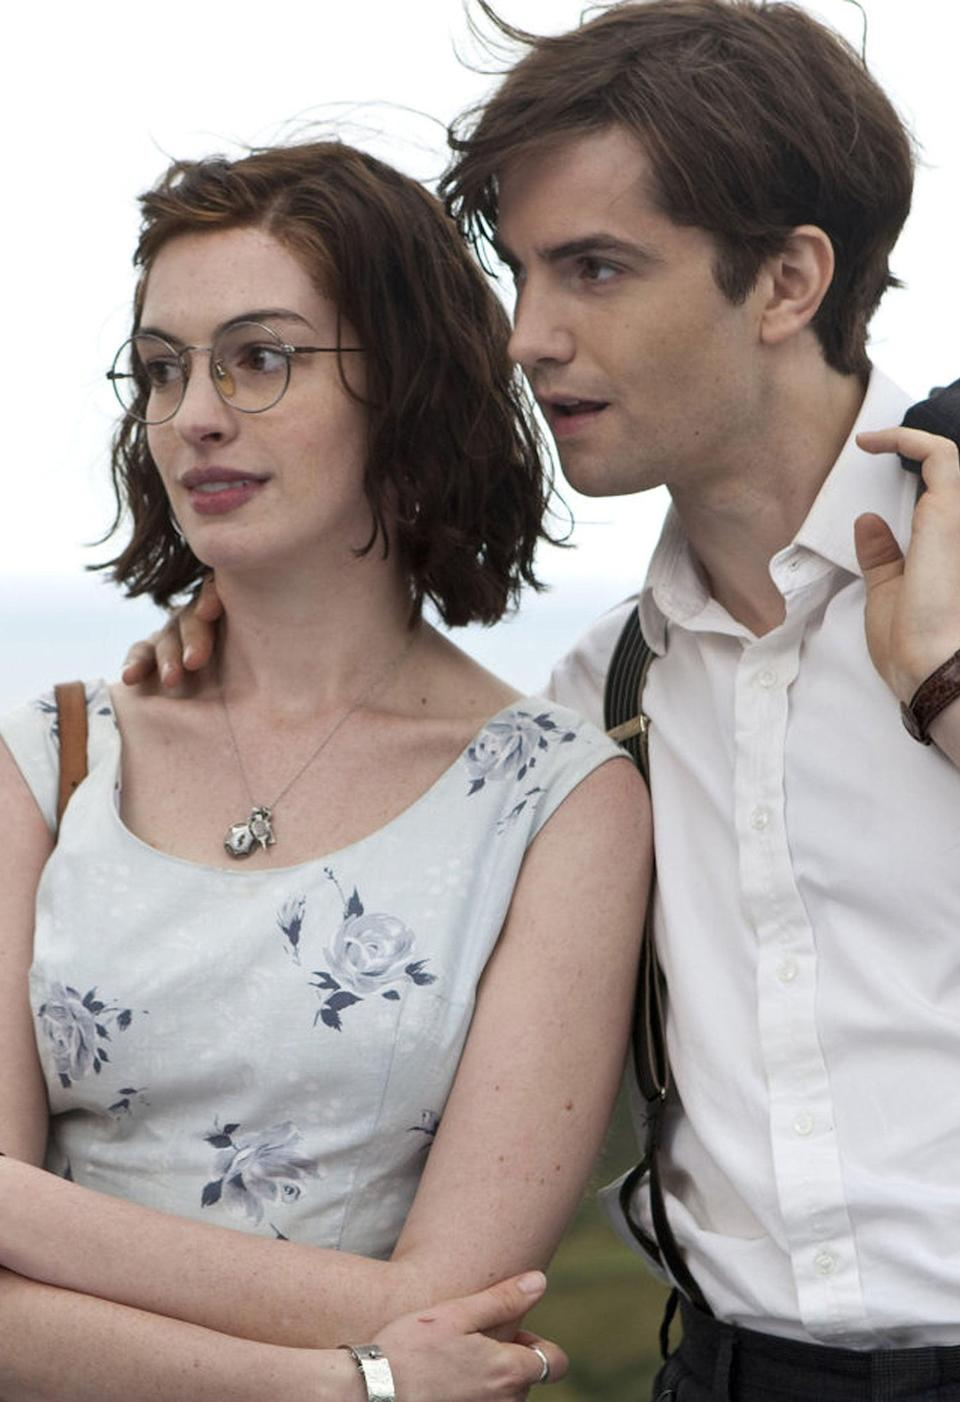 Mean jokes: Sturgess with Anne Hathaway and her Yorkshire accent in 'One Day' (Moviestore/Shutterstock)